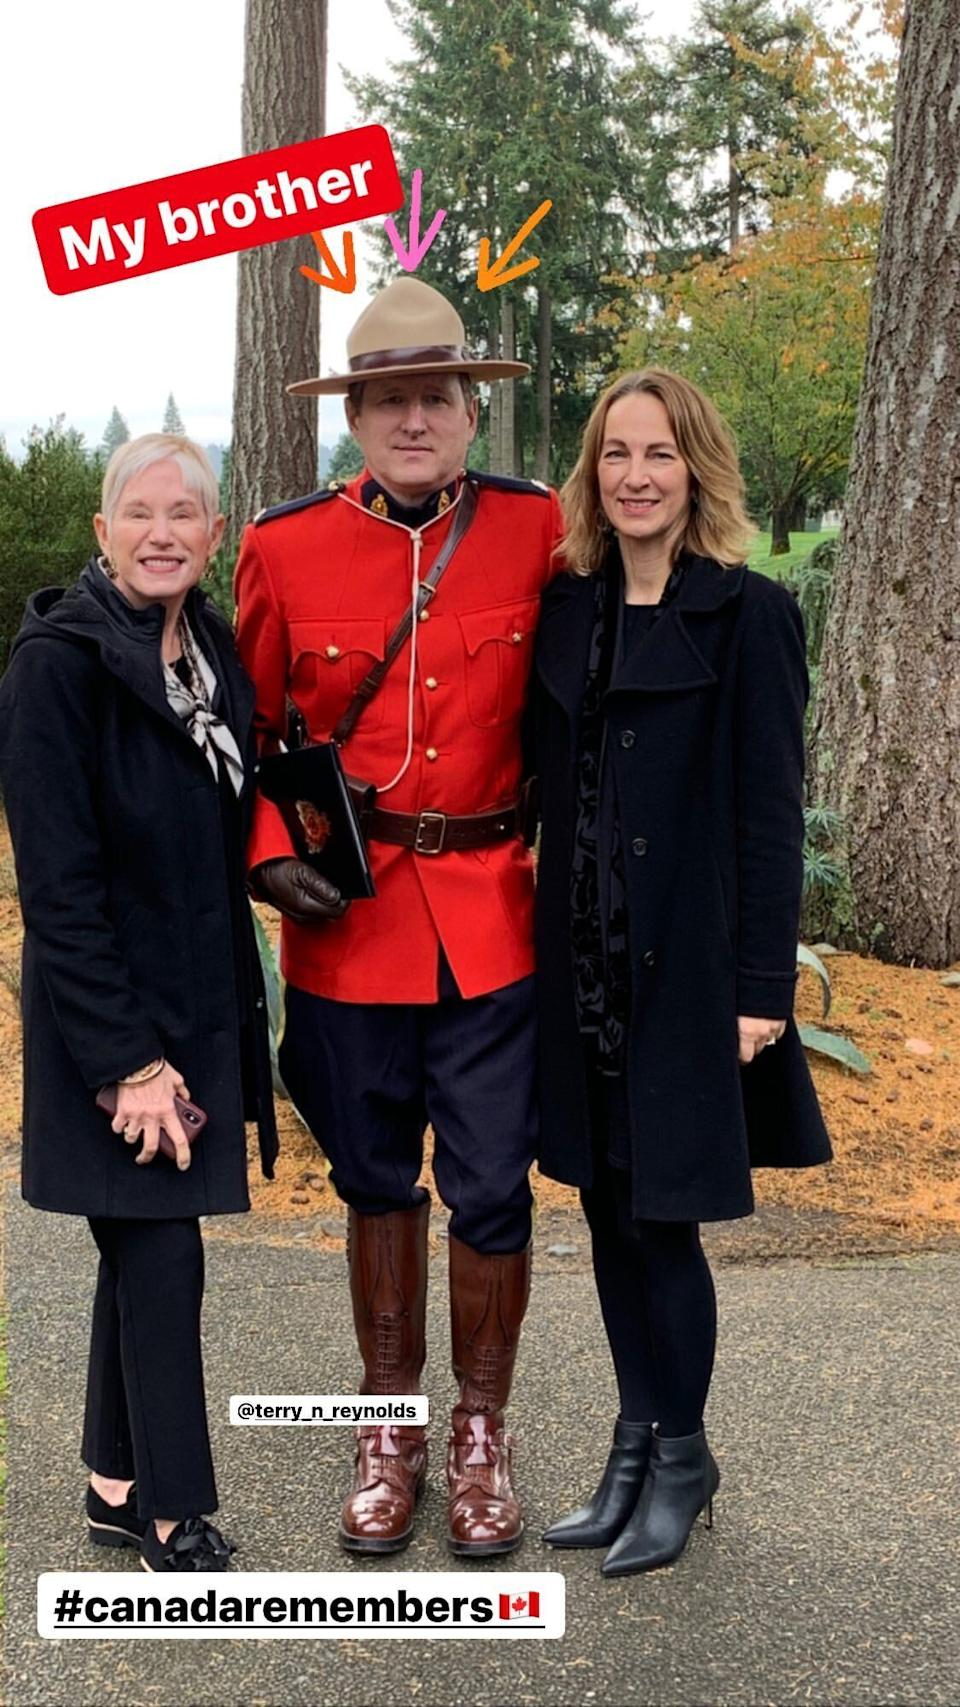 Ryan Reynolds posted this photo of his brother Terry, a Mountie.  (Photo: Ryan Reynolds / Instagram)